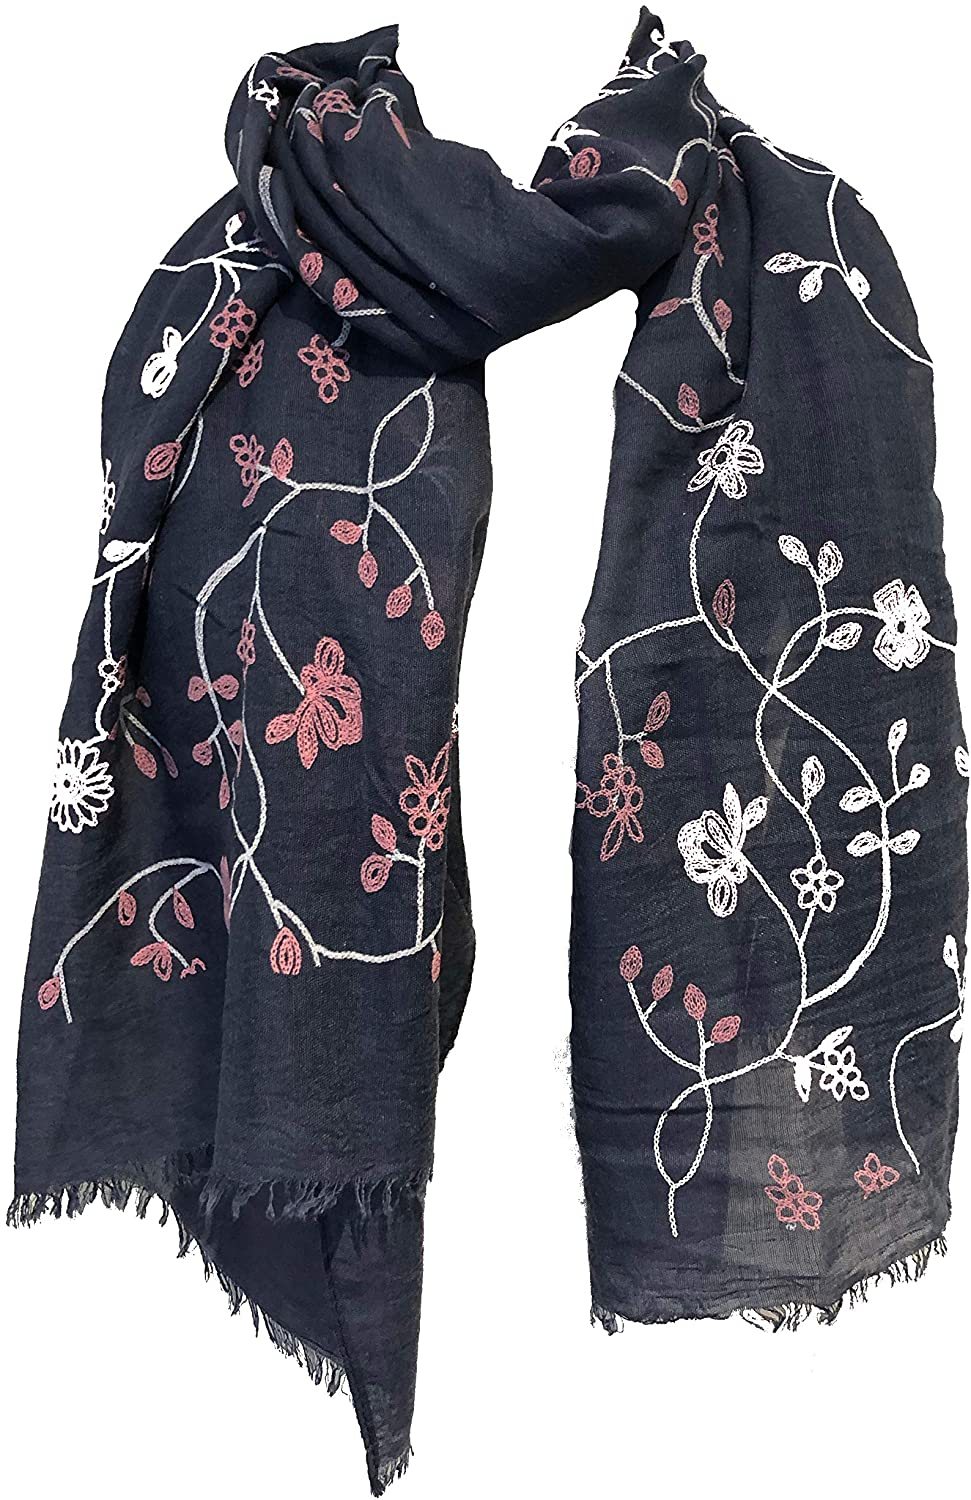 Blue with pink embroidered flowers and leaf design long Scarf/wrap with frayed edge